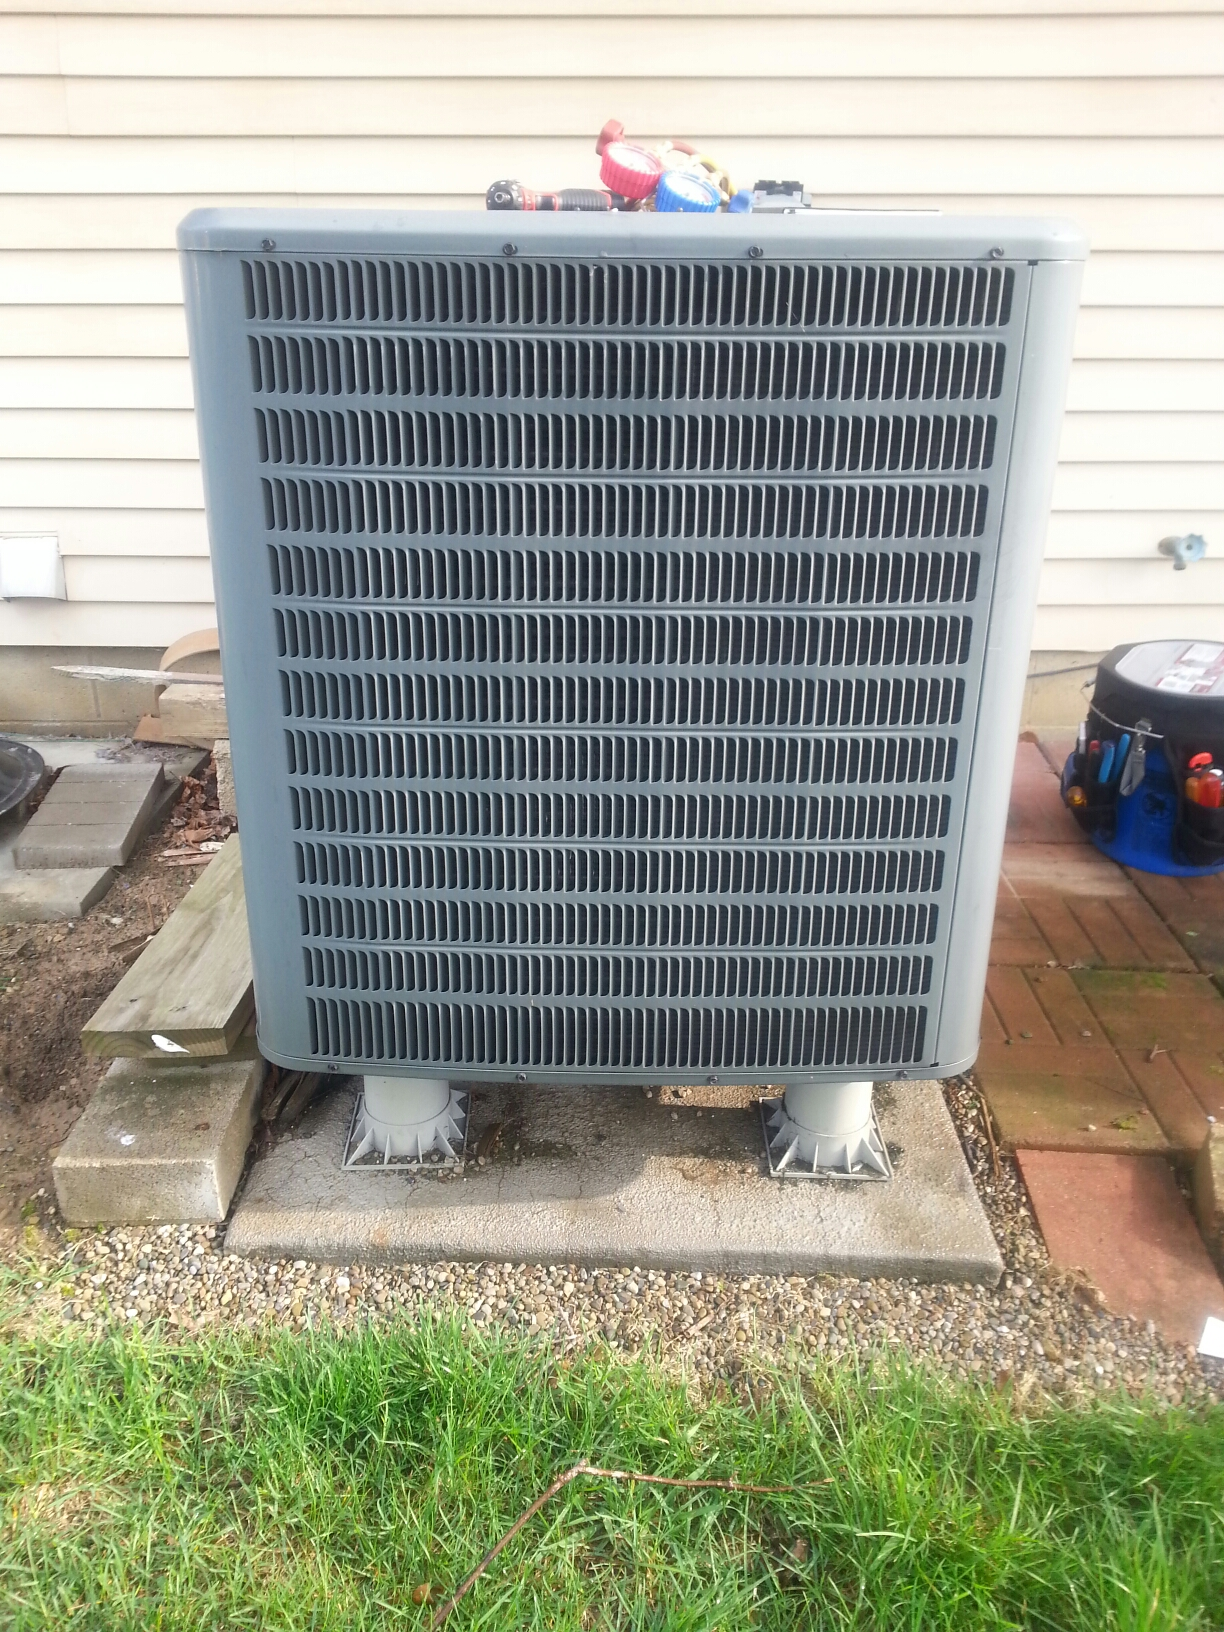 Blacklick, OH - Repairing a One Hour heat pump.